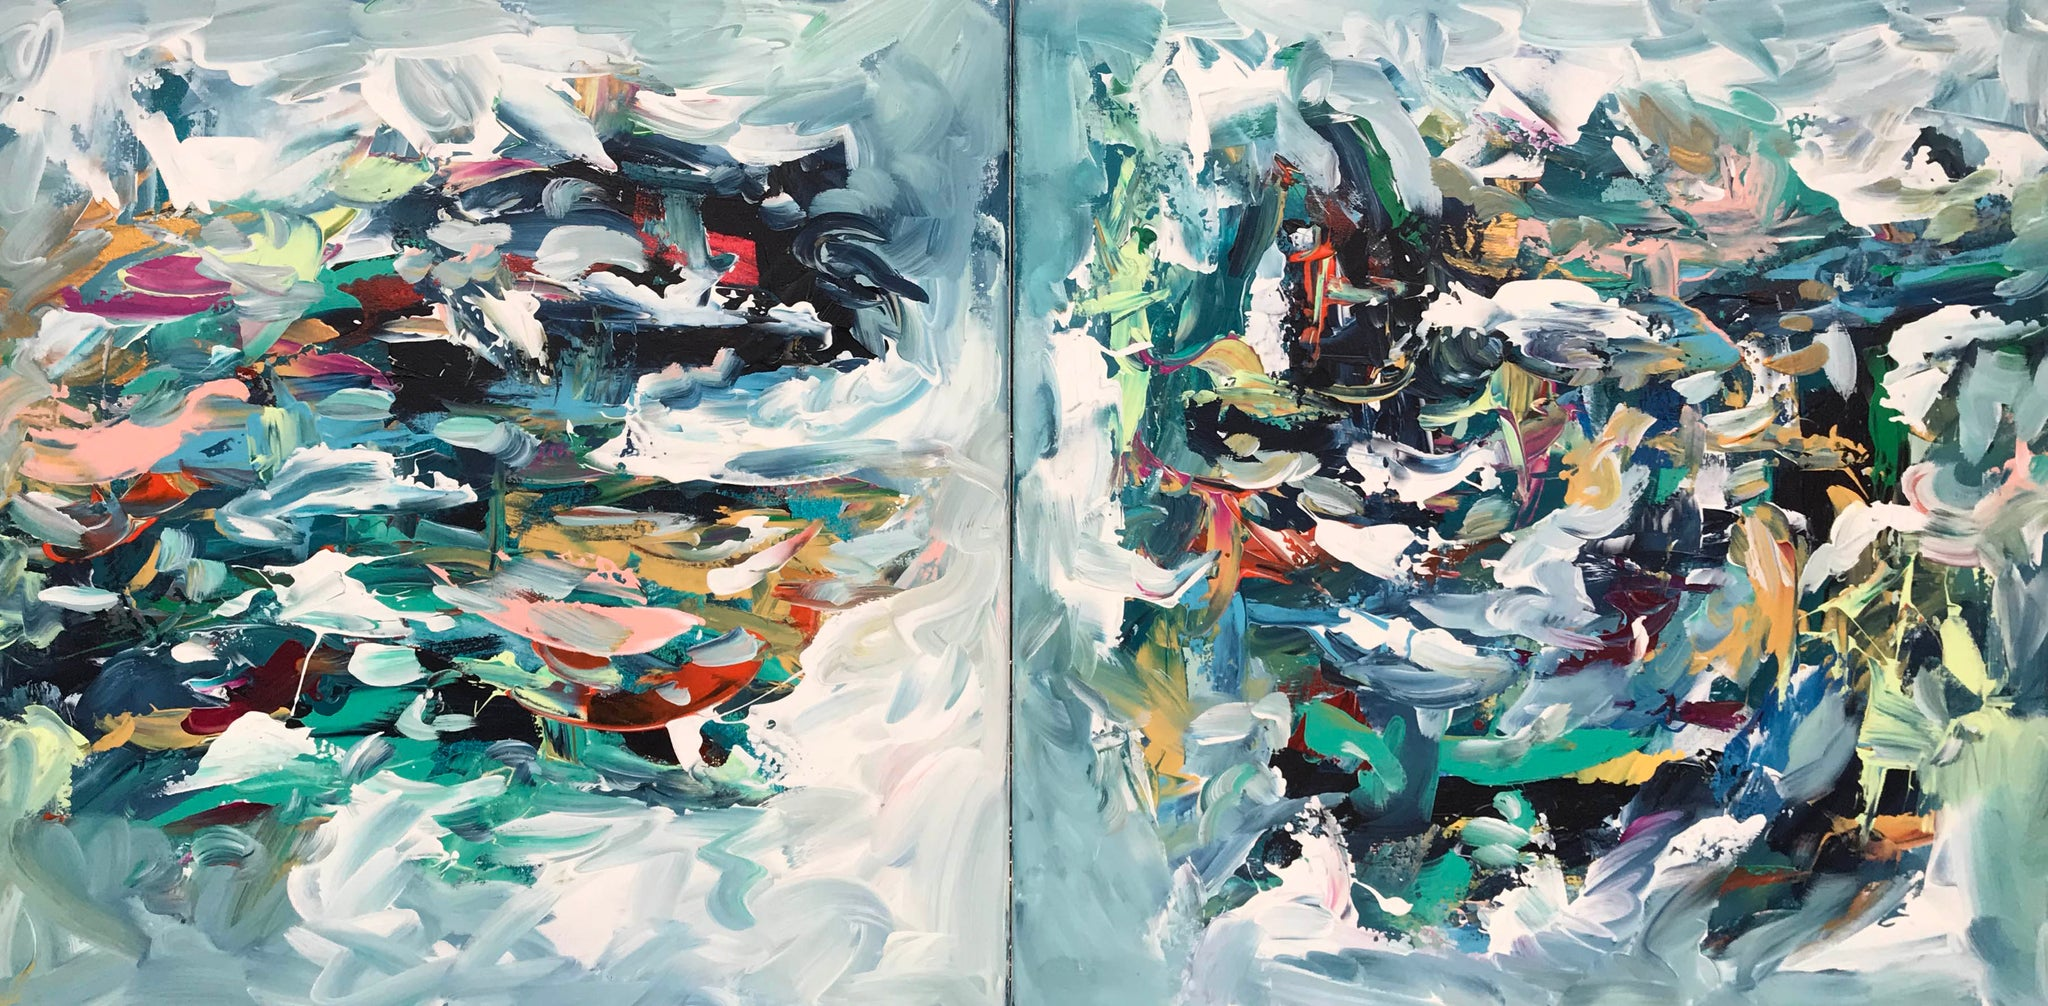 Untitled - 120x60 cm - Diptych Original Painting